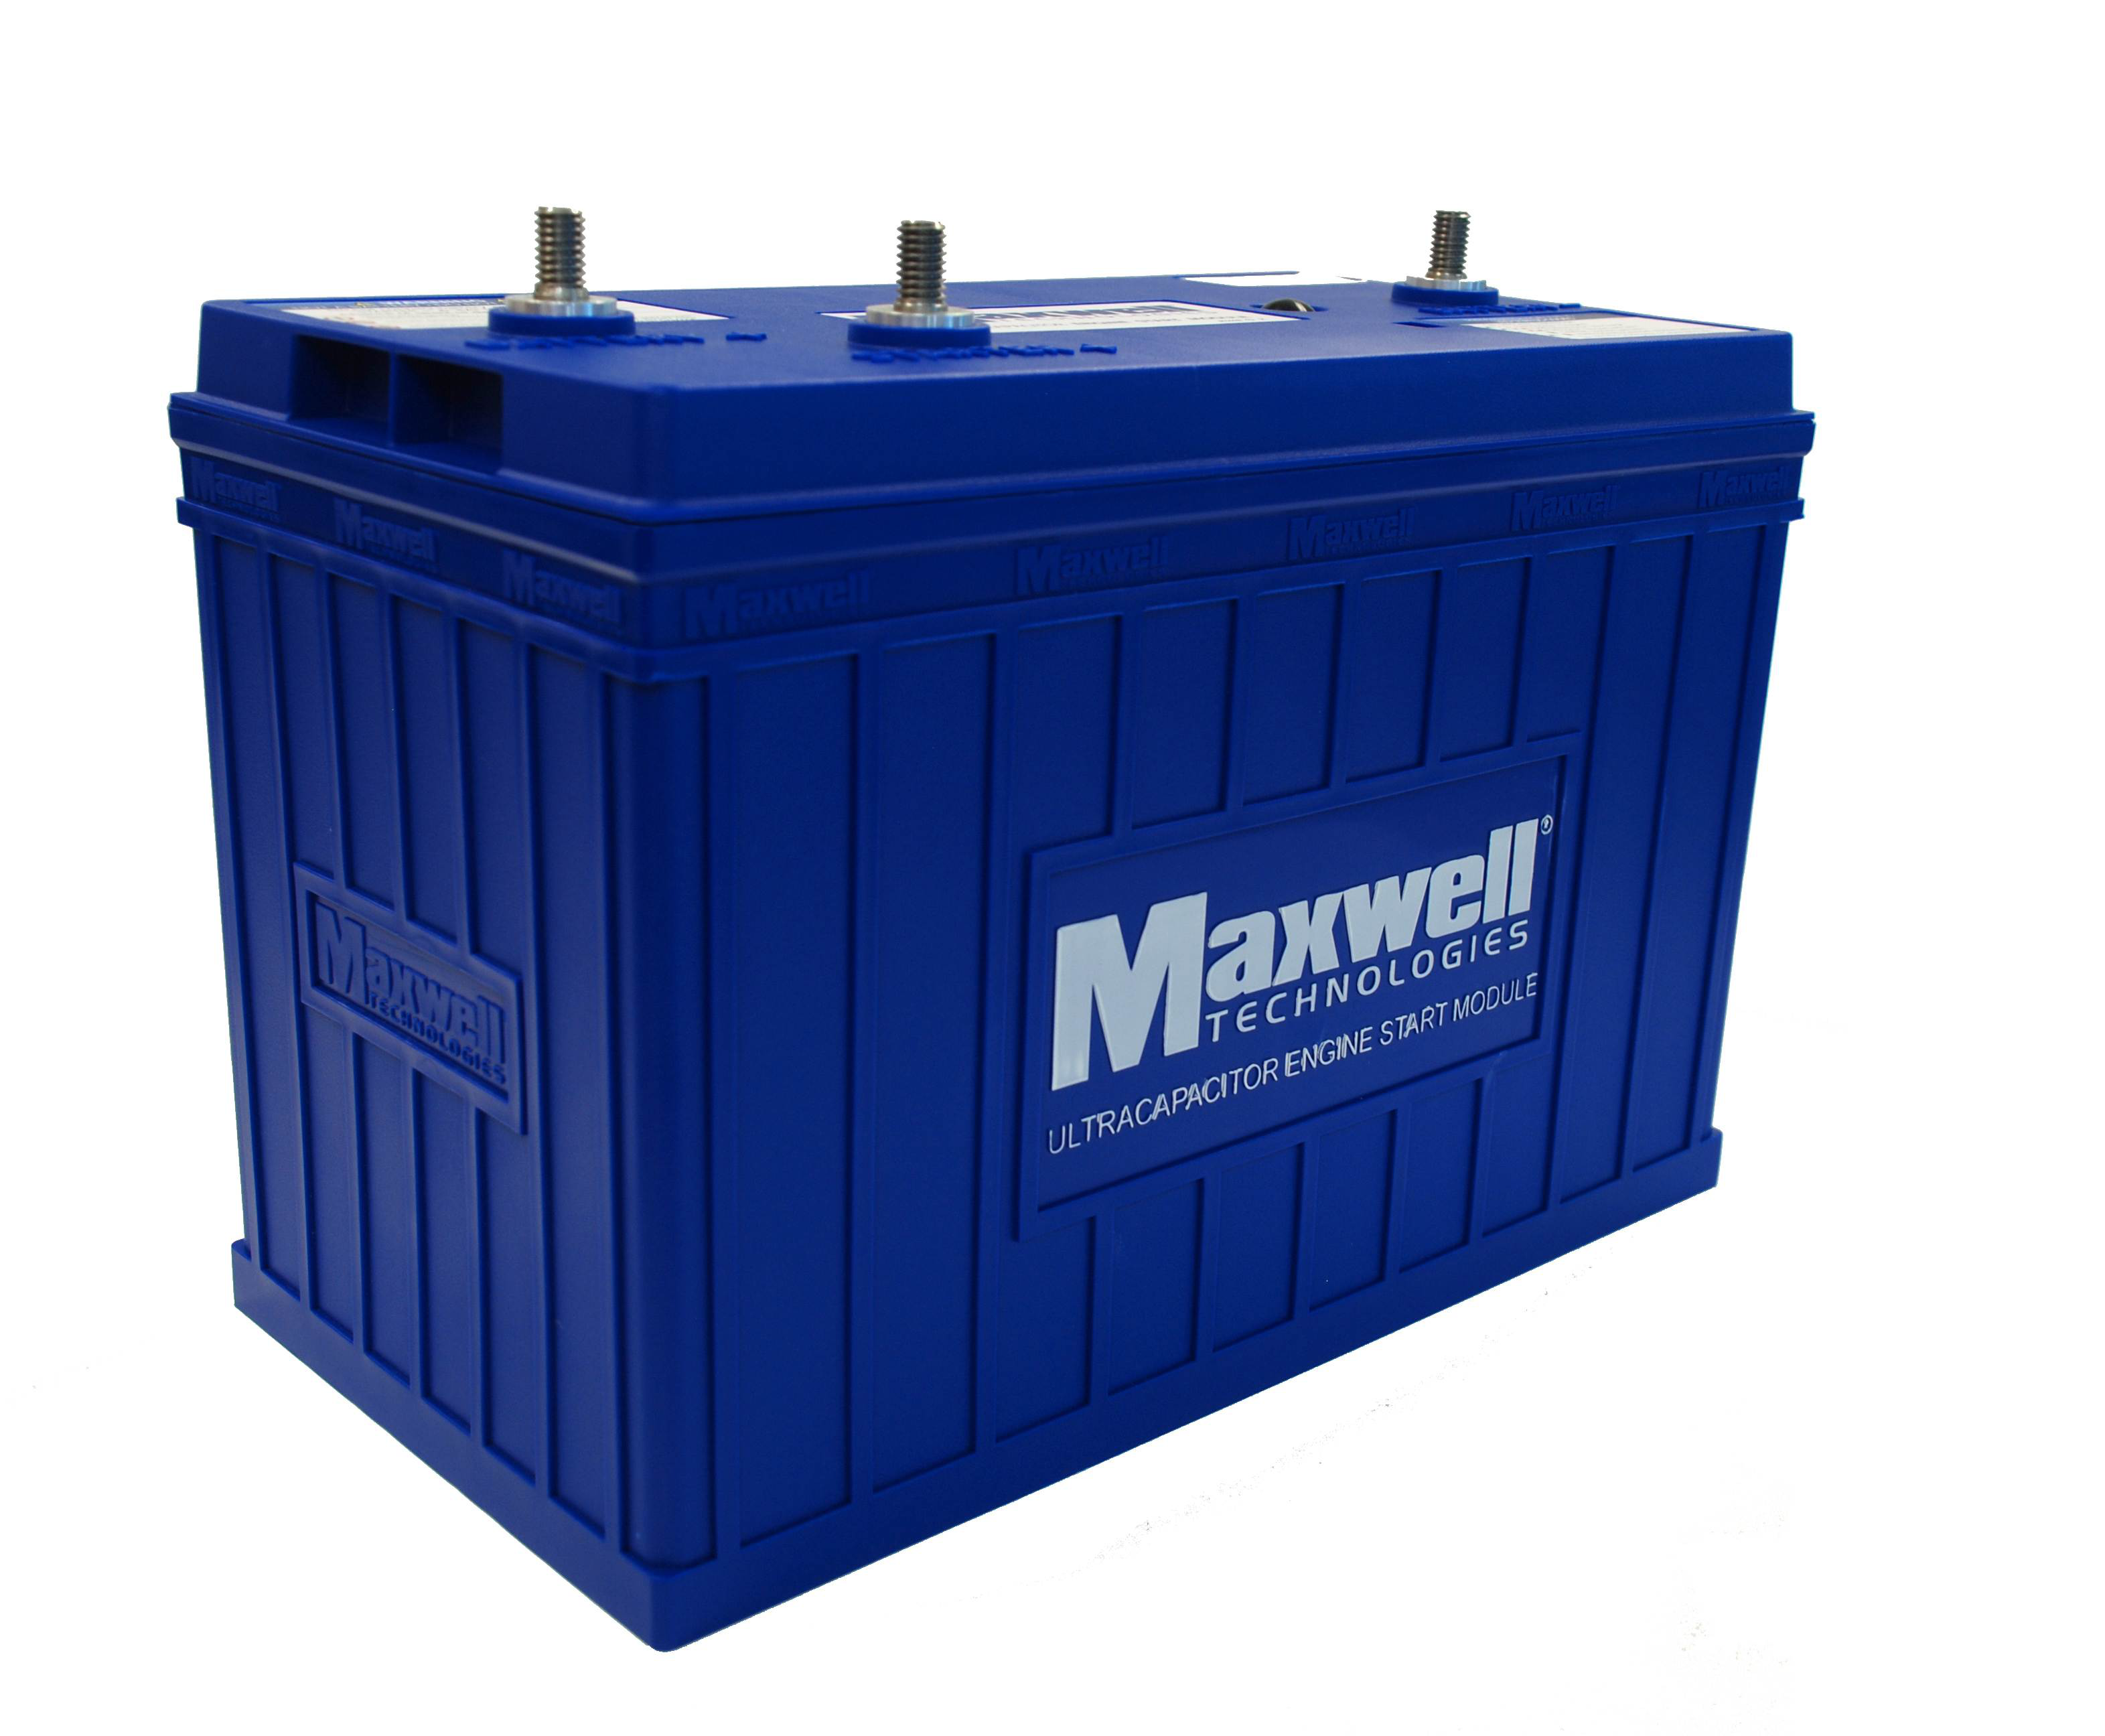 Maxwell expands ultracapacitor start modules to Class 3-6